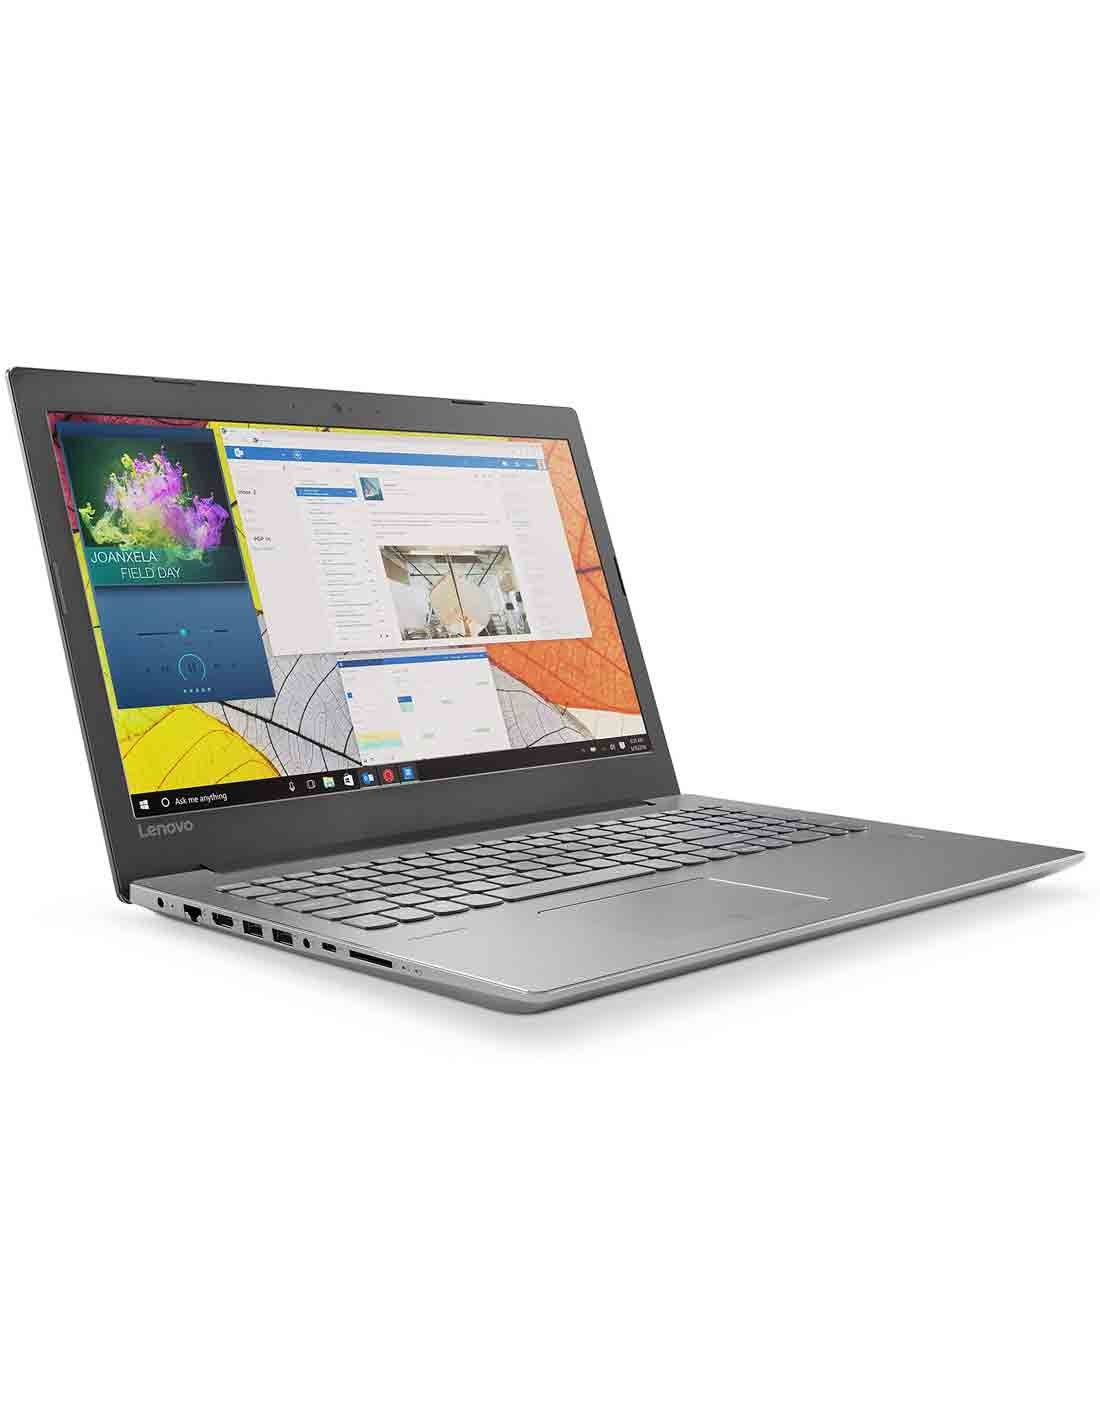 Lenovo IdeaPad 520 Intel Core i7 at a cheap price and free delivery in Dubai